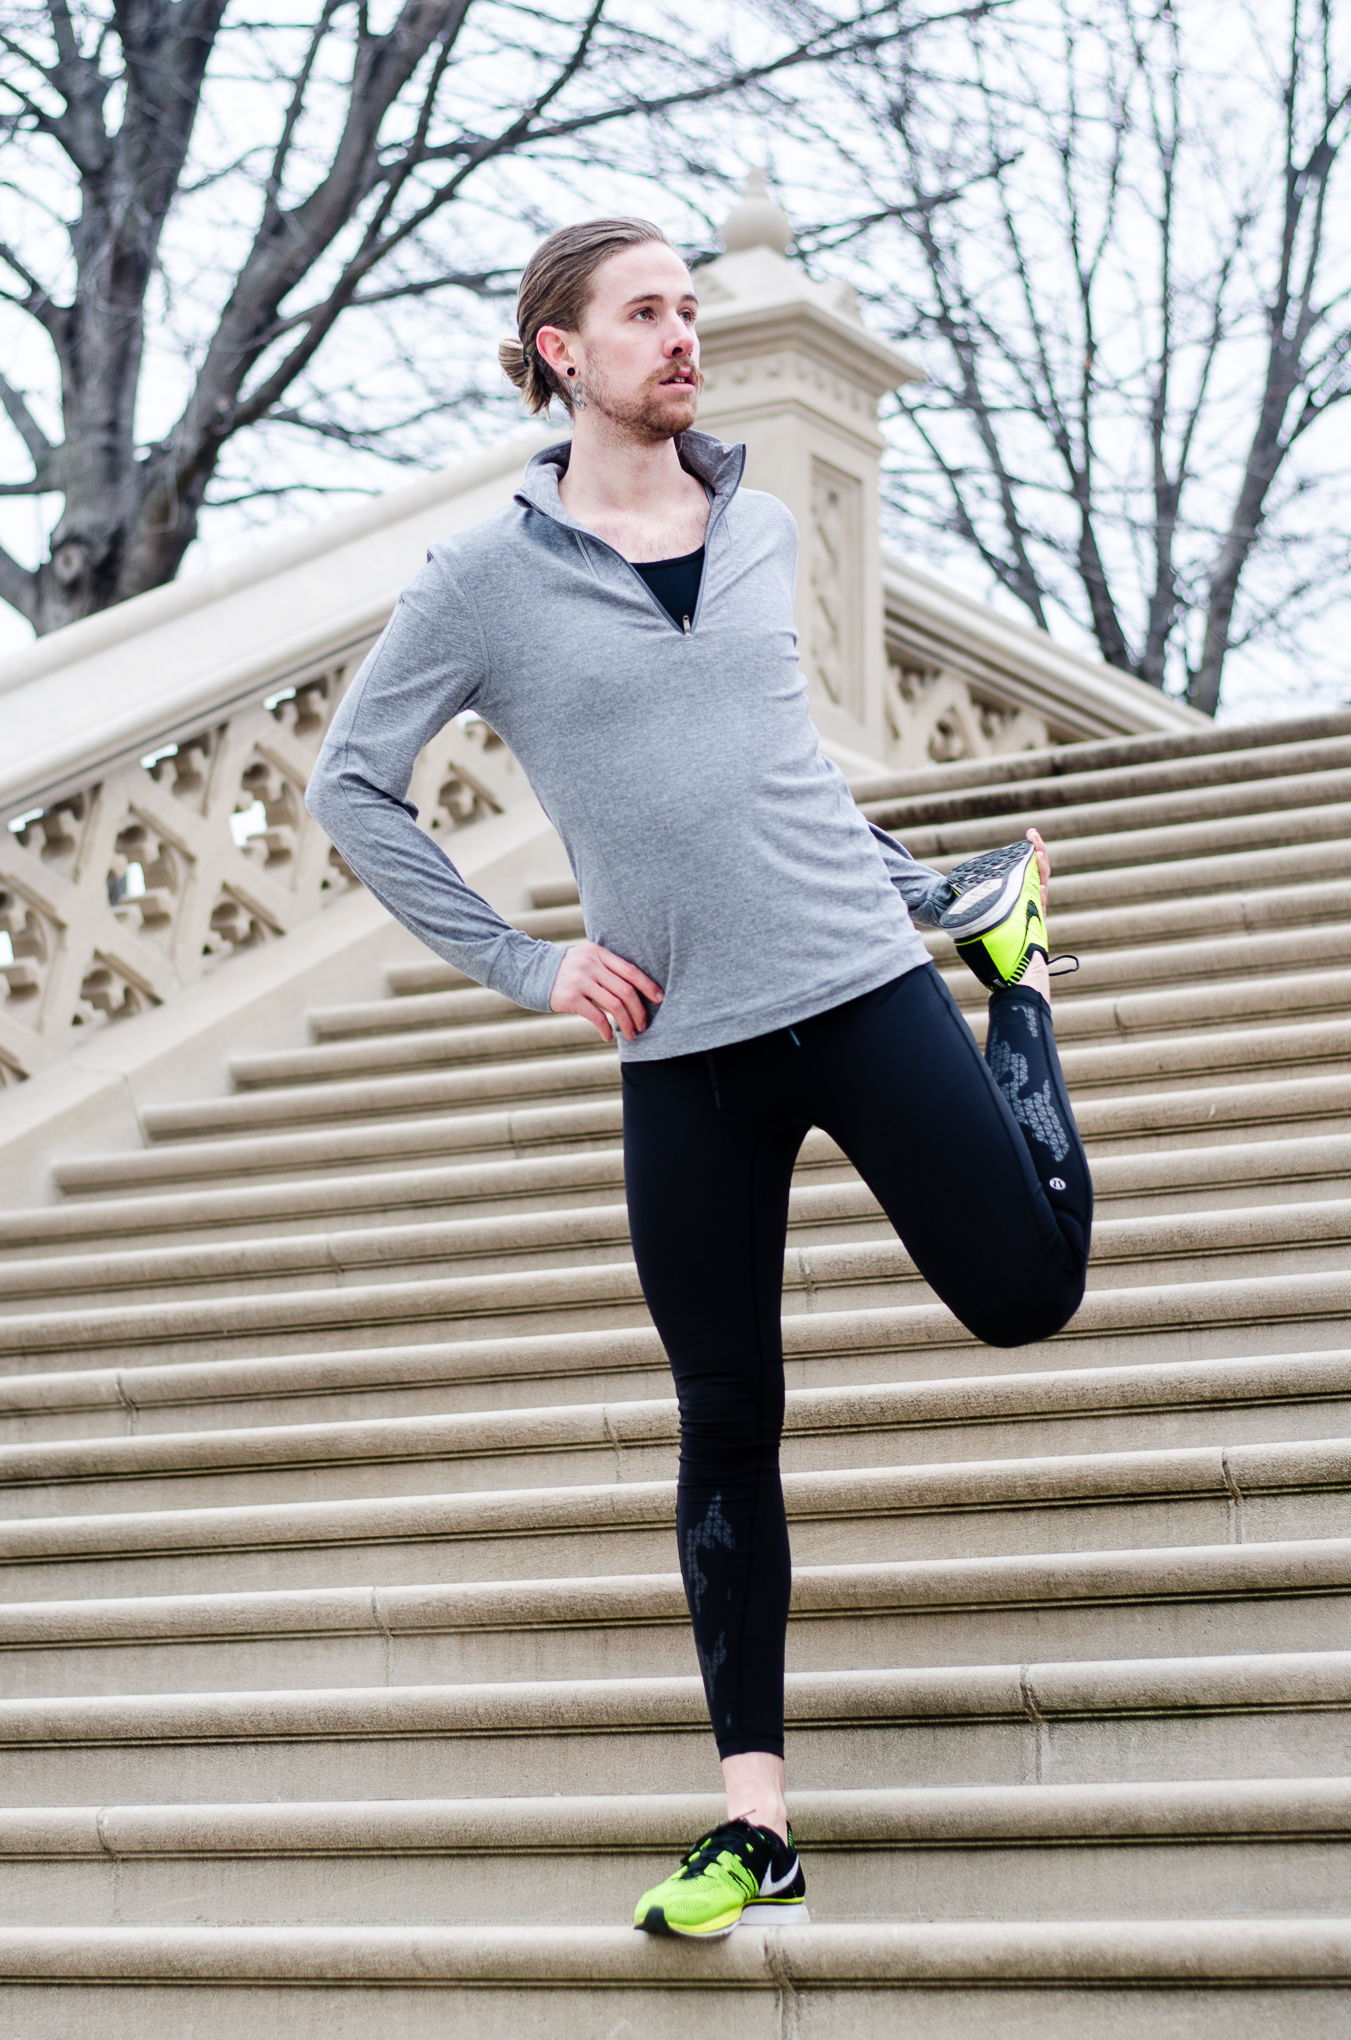 The Kentucky Gent, men's fashion and lifestyle blogger, incorporates Drip Drop into his marathon training.